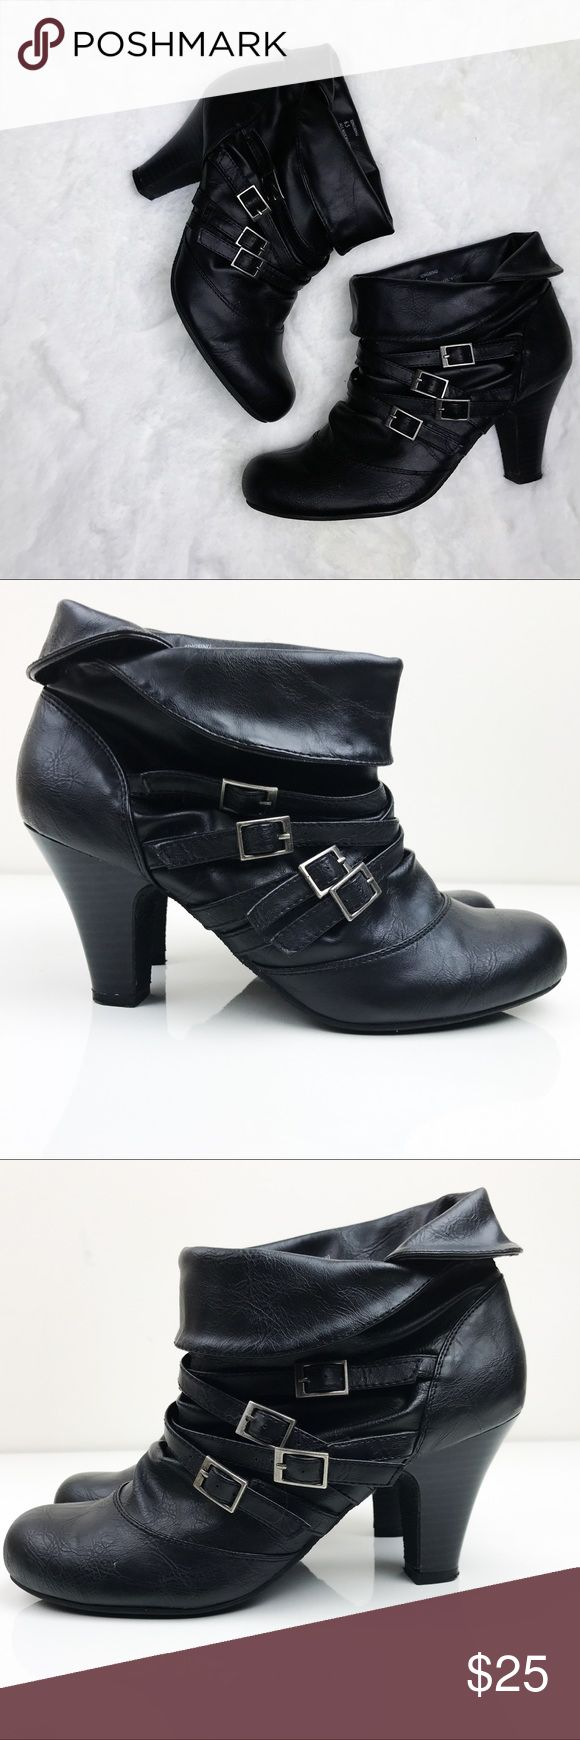 Steve Madden 'Singsing' Strappy Ankle Boots Gently used.  Very comfortable and stylish ankle boots!  Strap and buckle accents add to the undeniable stylish quality of these boots from Madden Girl by Steve Madden. Singsing ankle boots feature faux leather uppers and a fold-over cuff look.  * Height: Ankle * Style: Pull-on * Toe shape: Round * Heel height/type: 2.5-inch tapered Steve Madden Shoes Ankle Boots & Booties